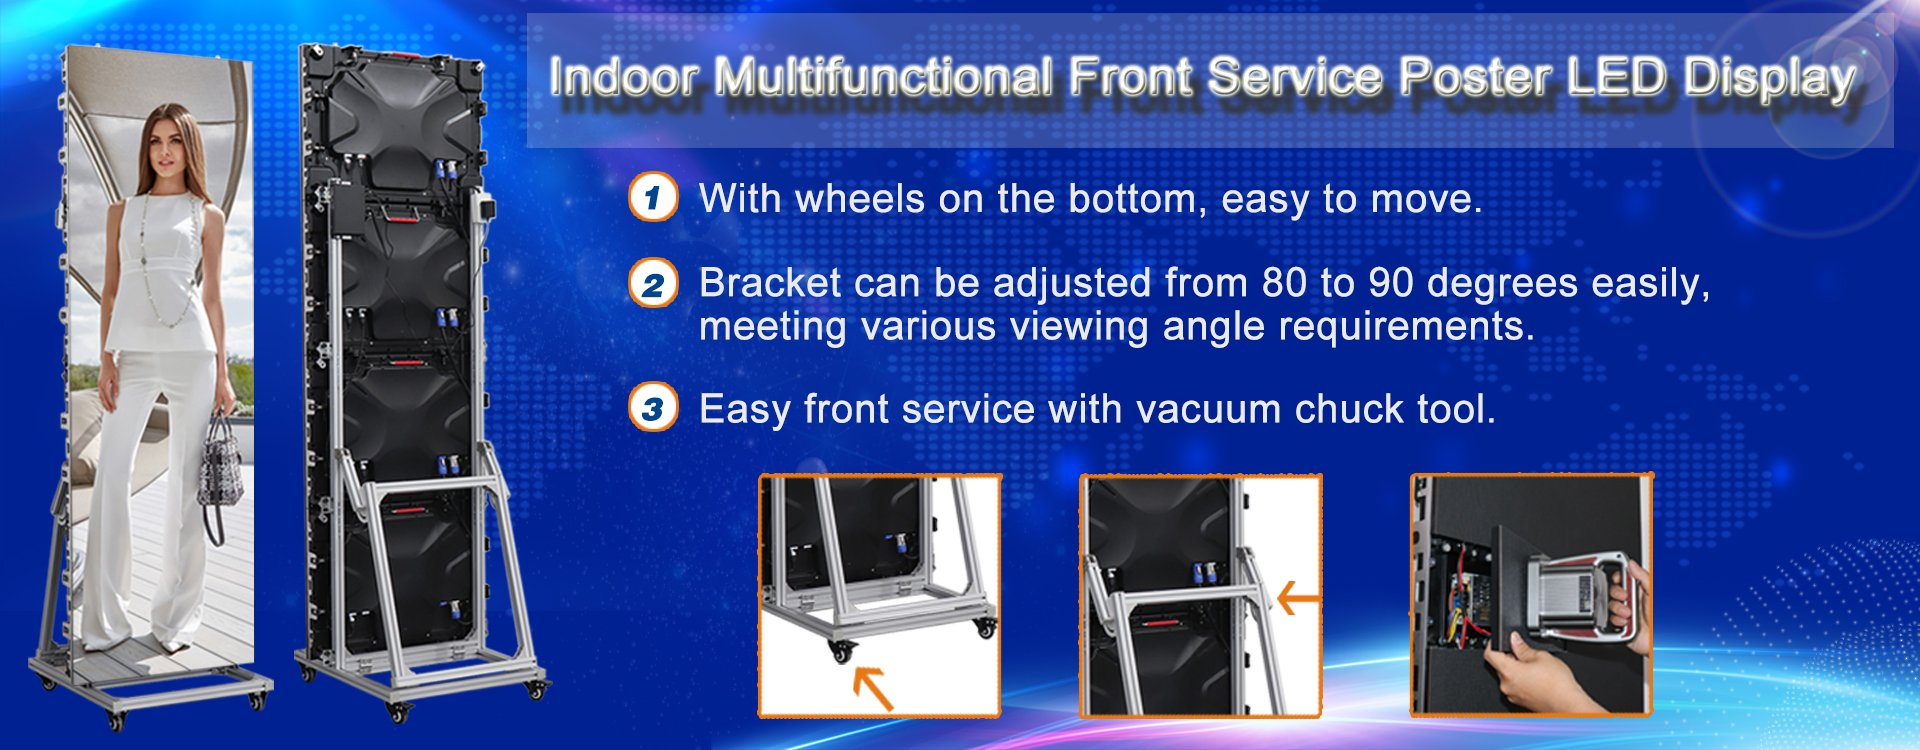 Indoor Front Service Poster LED Display